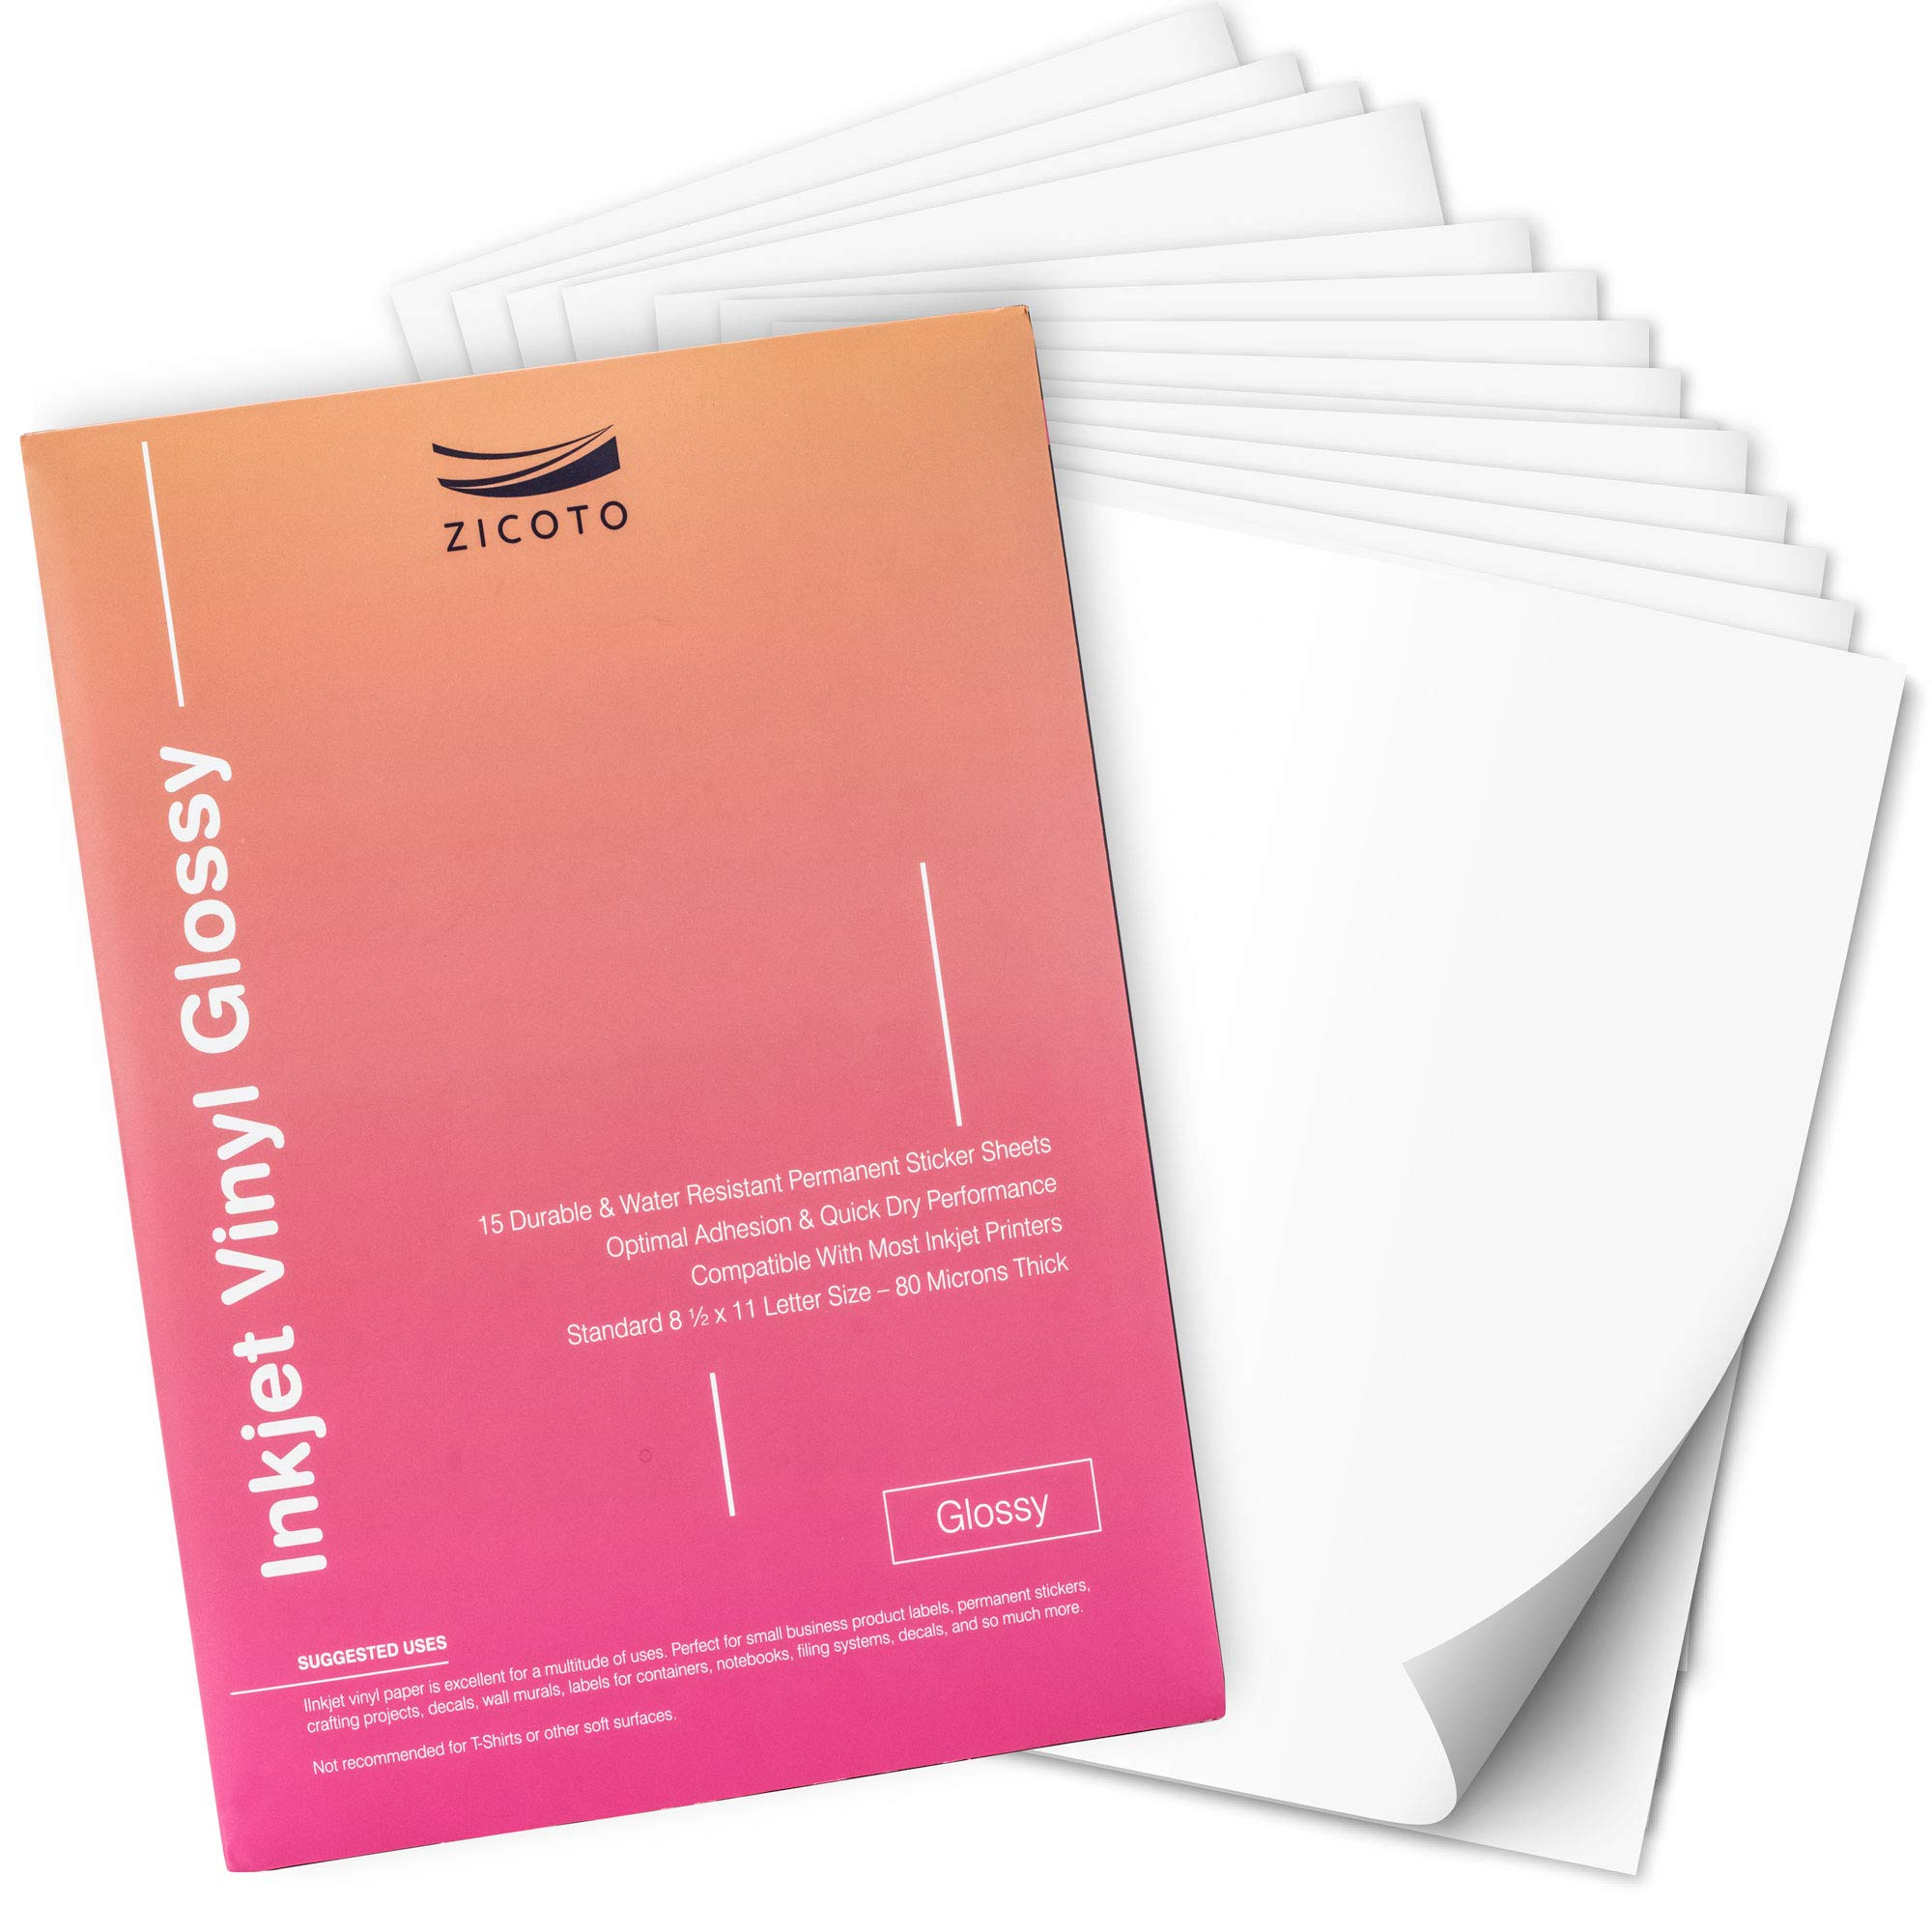 Premium Printable Vinyl Sticker Paper for Your Inkjet Printer - 15 Glossy White Waterproof Decal Paper Sheets - Dries Quickly and Holds Ink Beautifully by ZICOTO (Image #7)